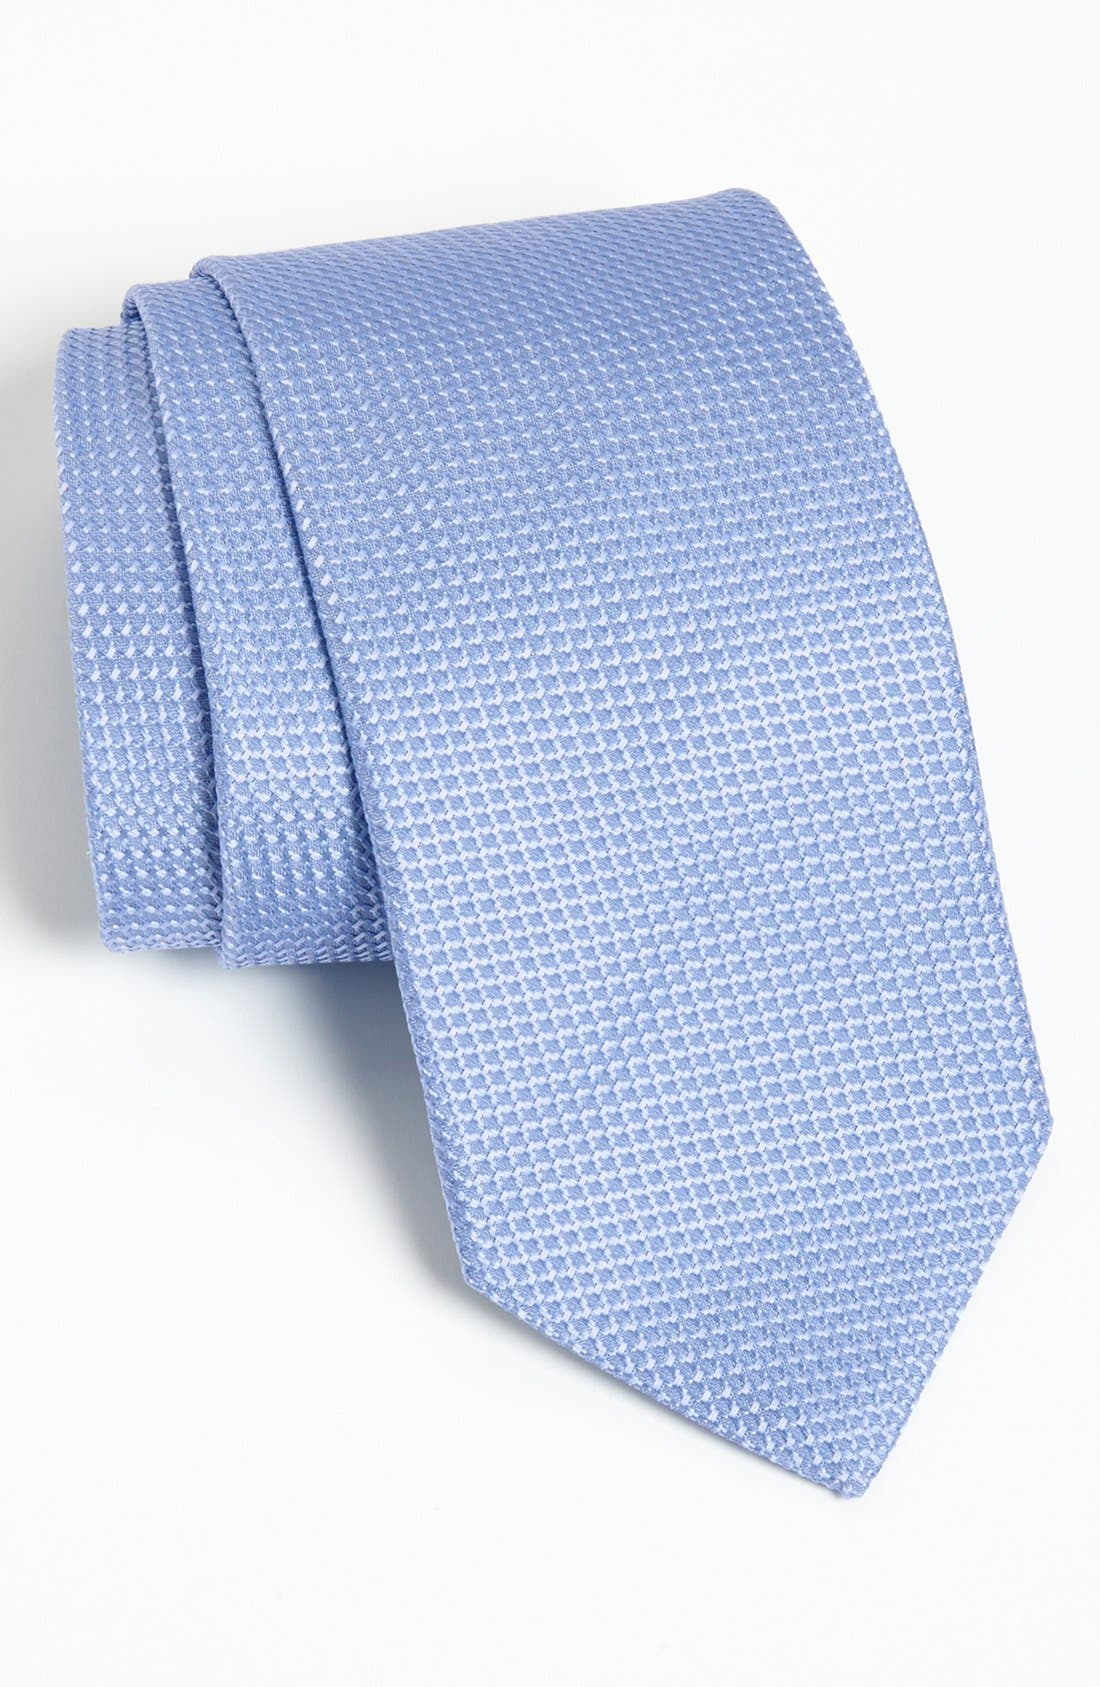 Main Image - Brook 'Brothers' Woven Silk Tie IMT TEST IMT TEST IMT TEST & Proofer tes - TEST 02/06. TEST